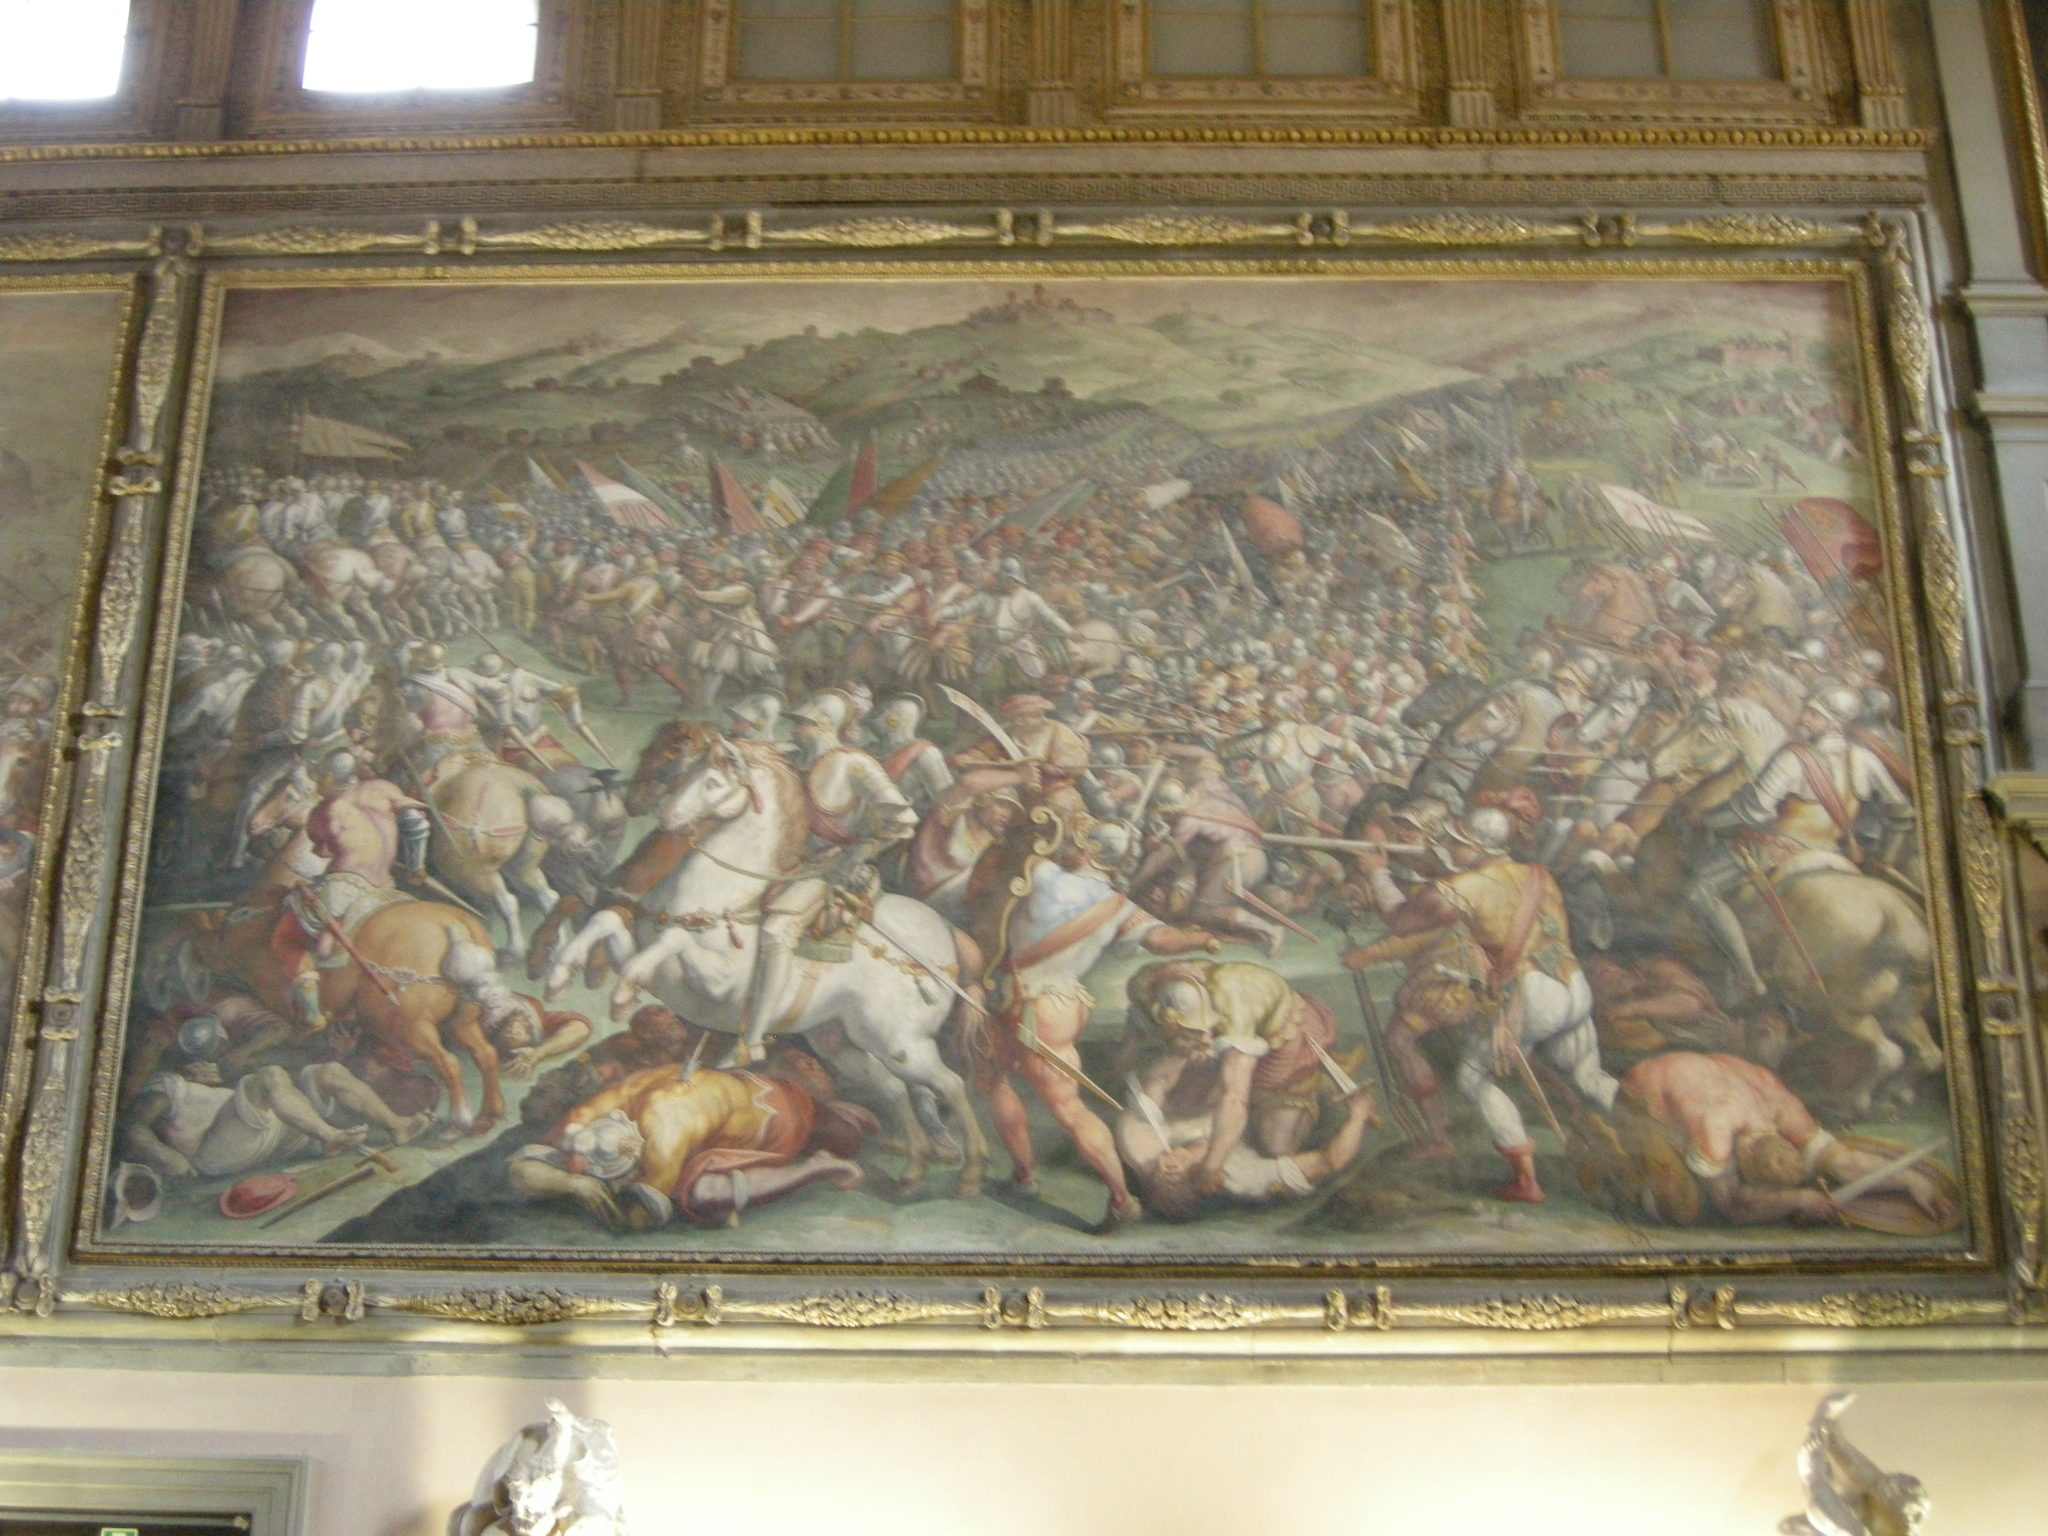 giorgi vasari in the florentine high Giorgio vasari did all this, but he did it before anyone else, arguably  born in  1511 in the town of arezzo, which is southeast of florence, vasari was  it was  his fate to work in the aftermath of the high renaissance, to visit.